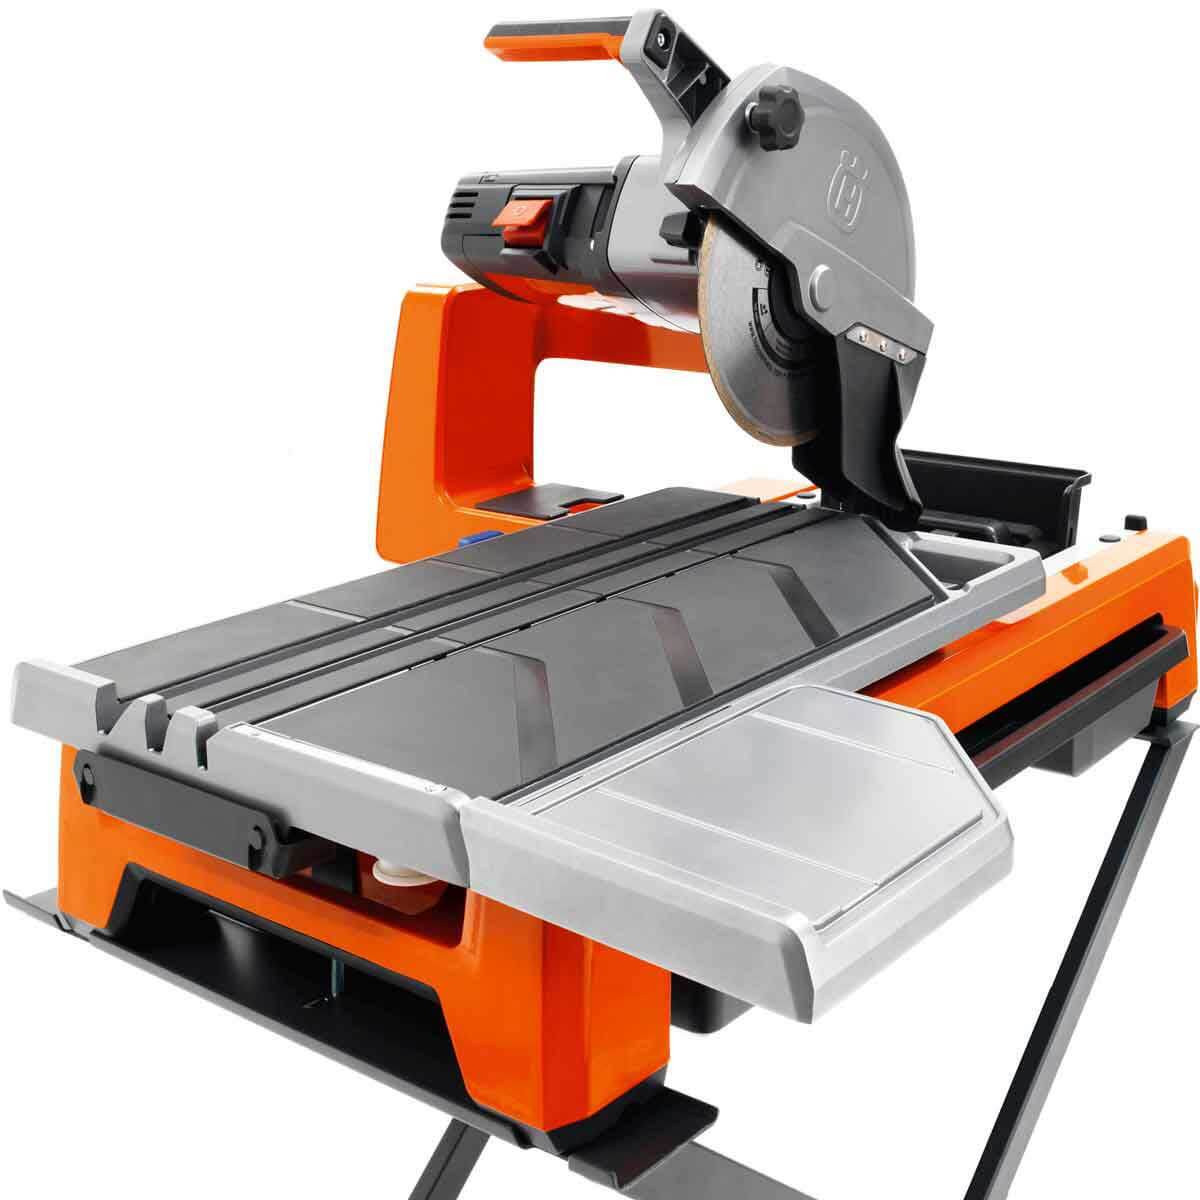 Husqvarna tile saw with glass diamond blade